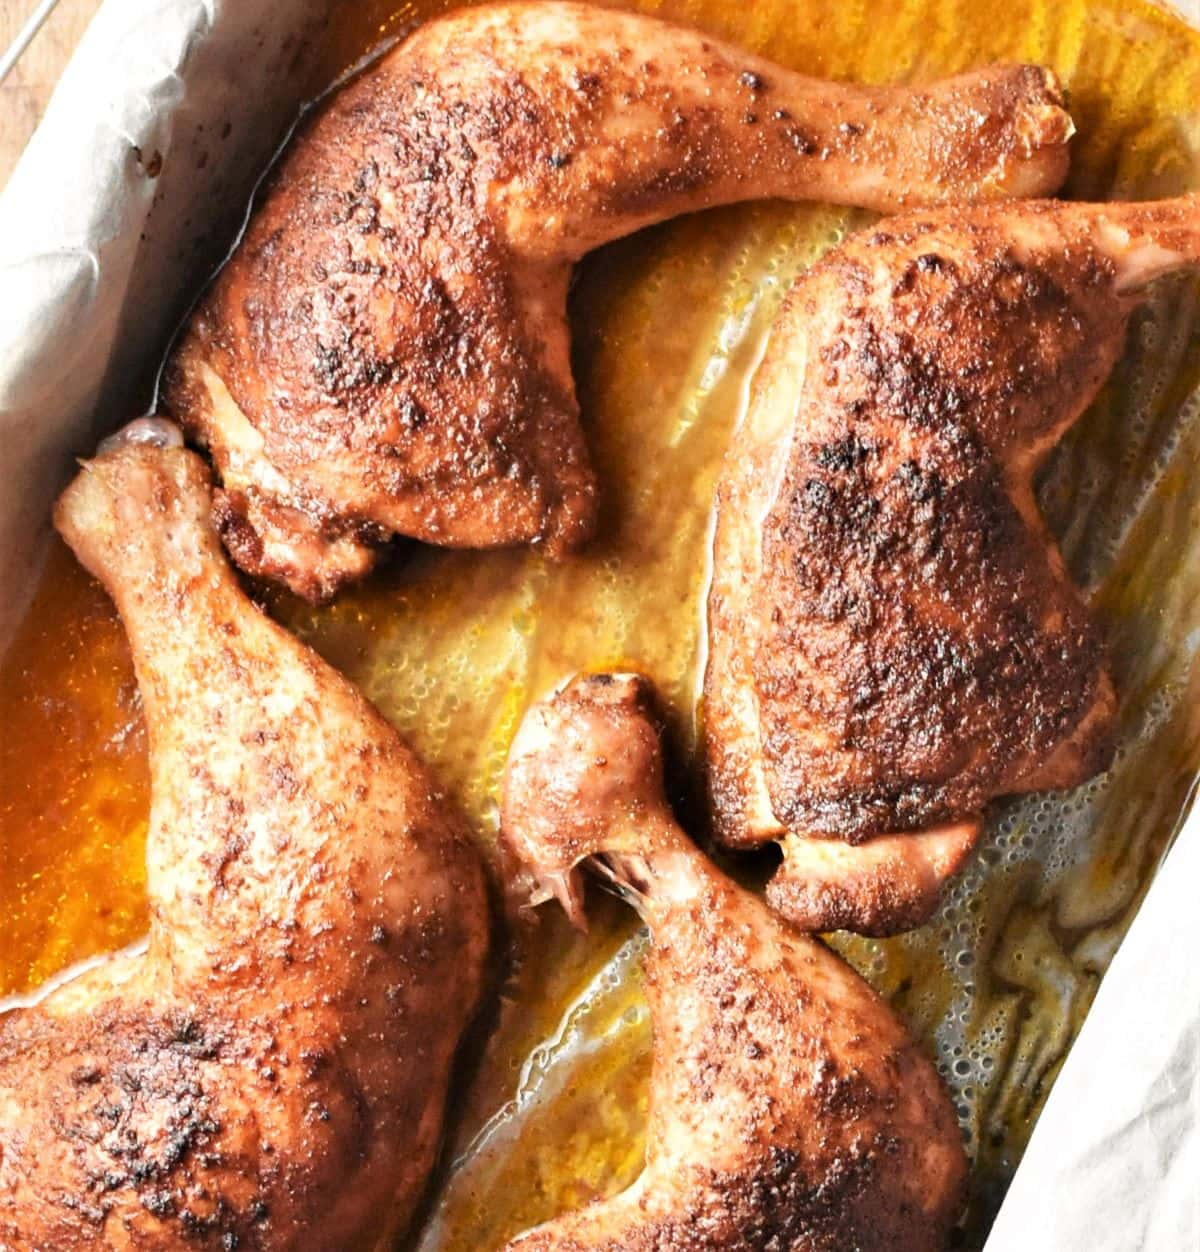 Close-up view of 4 crispy chicken legs in roasting pan.